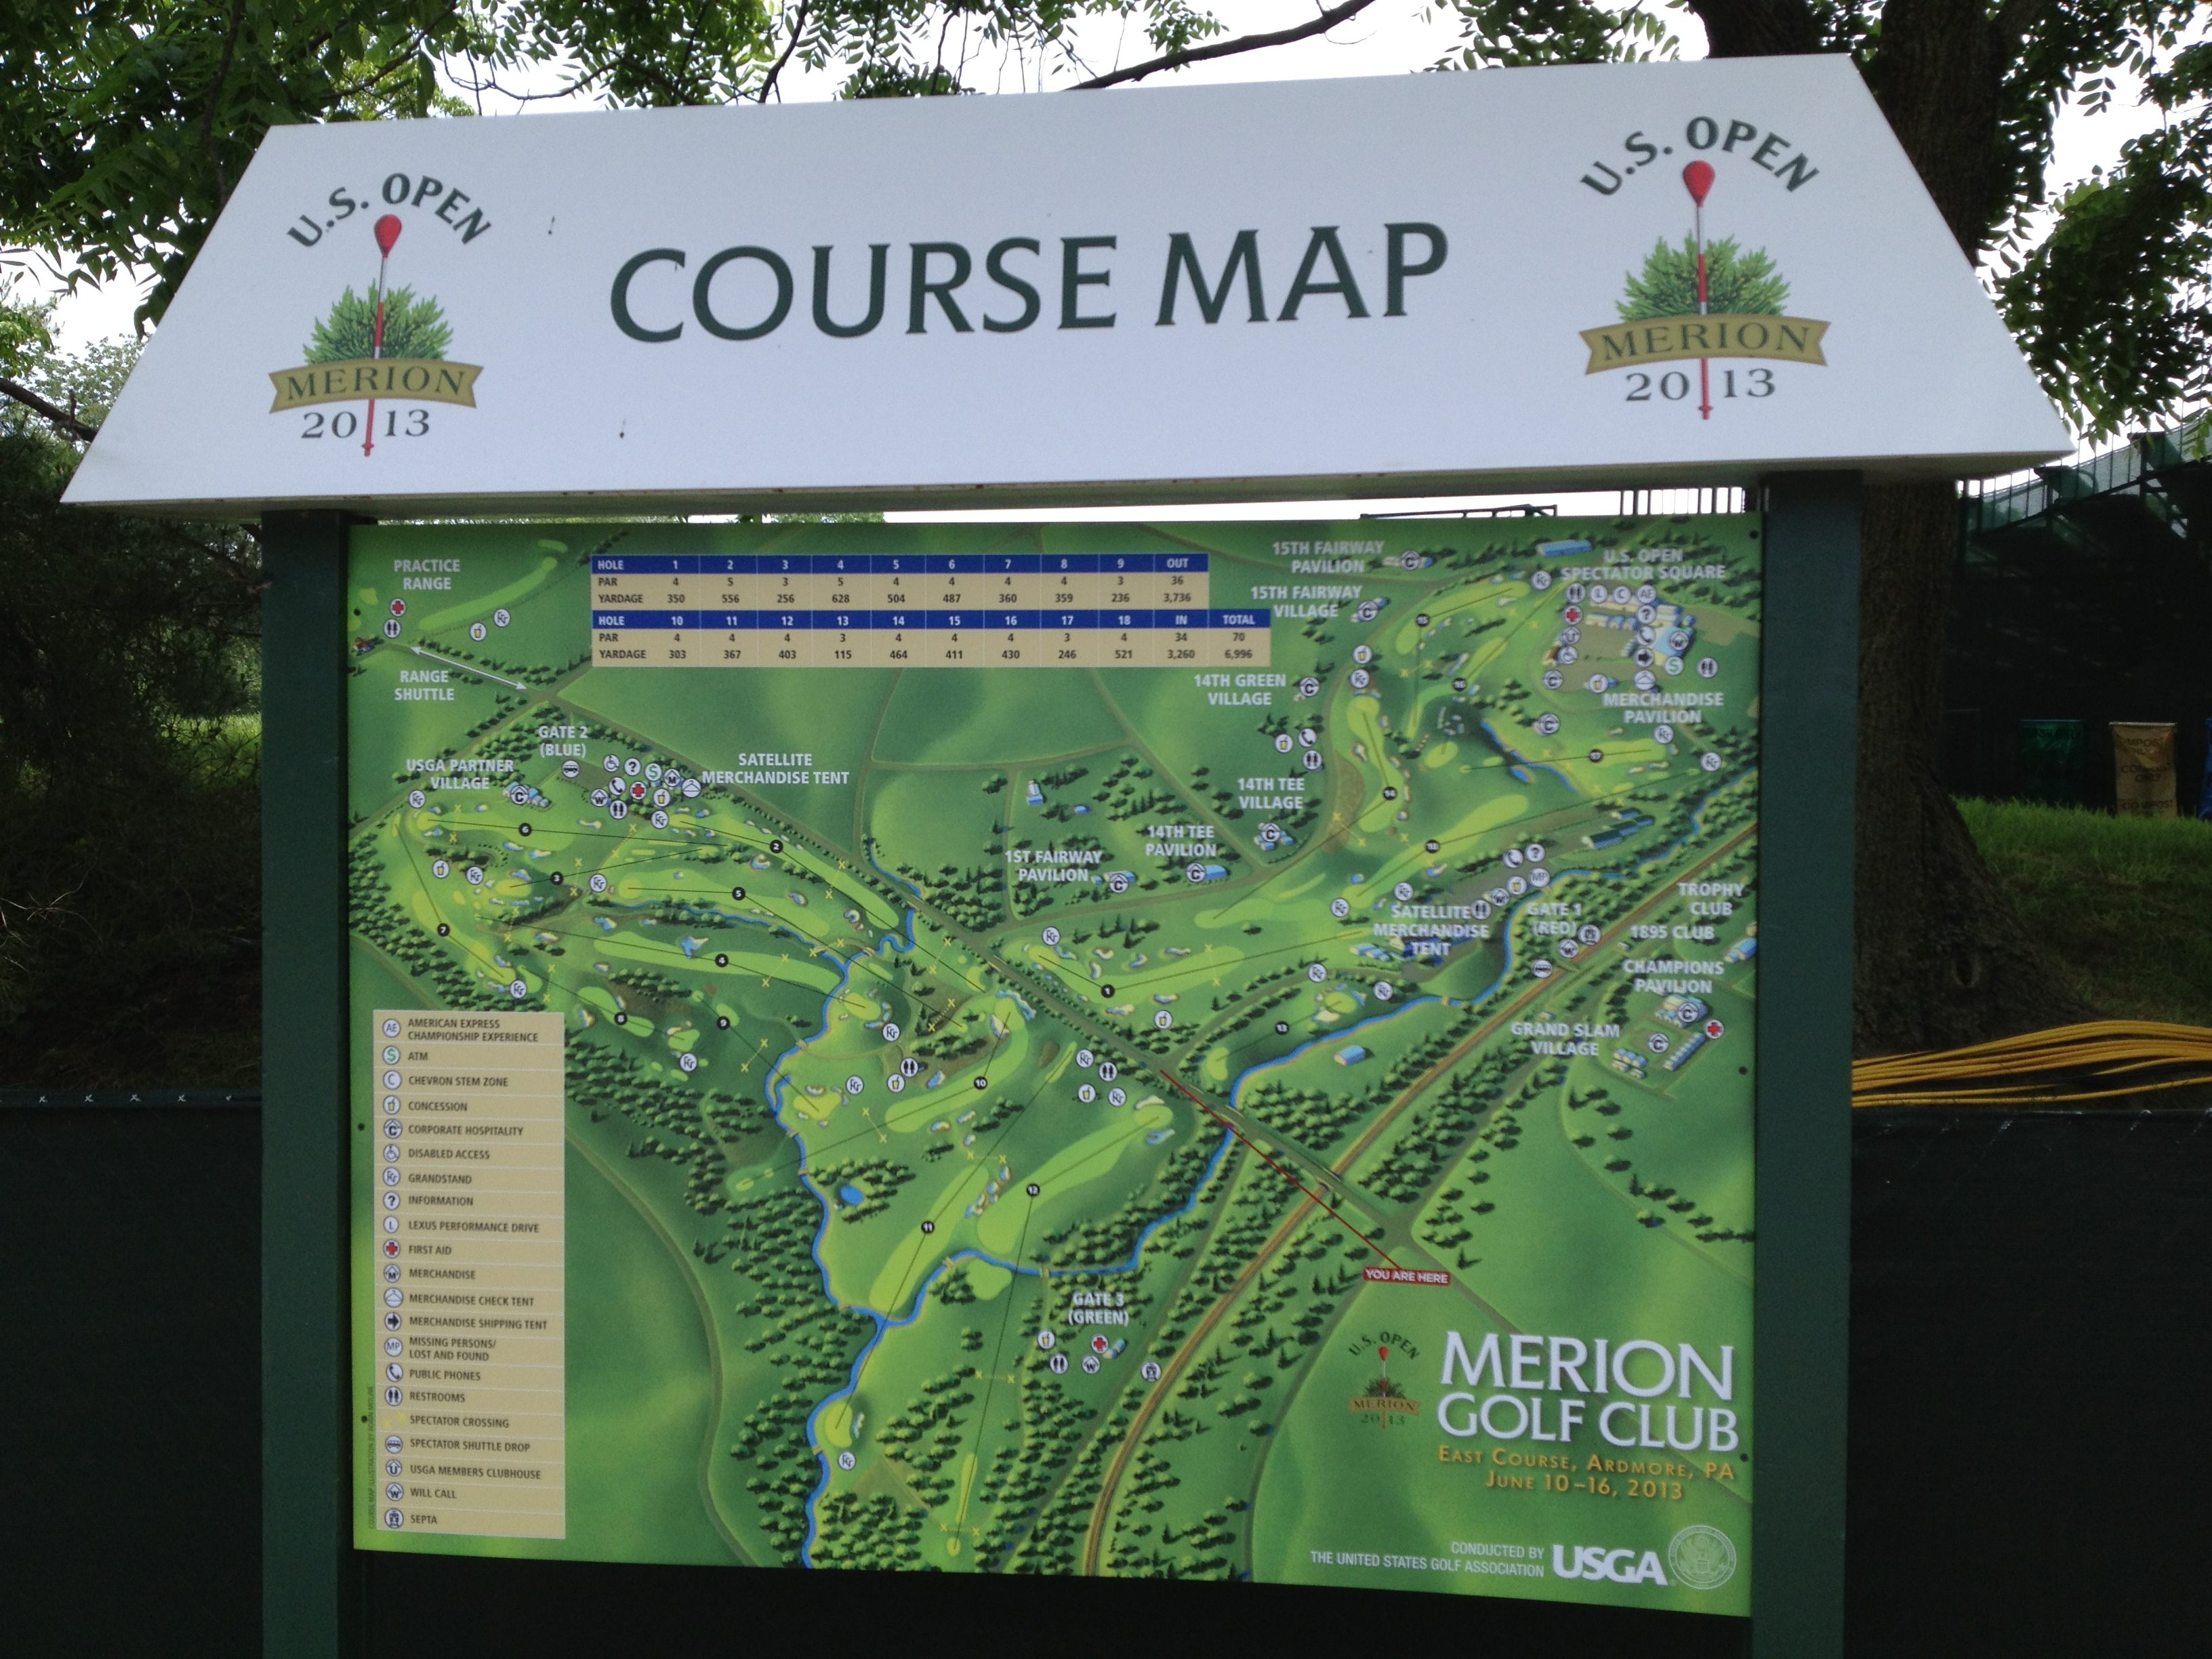 FileUS Open Course MapJPG Wikimedia Commons - Us open course map